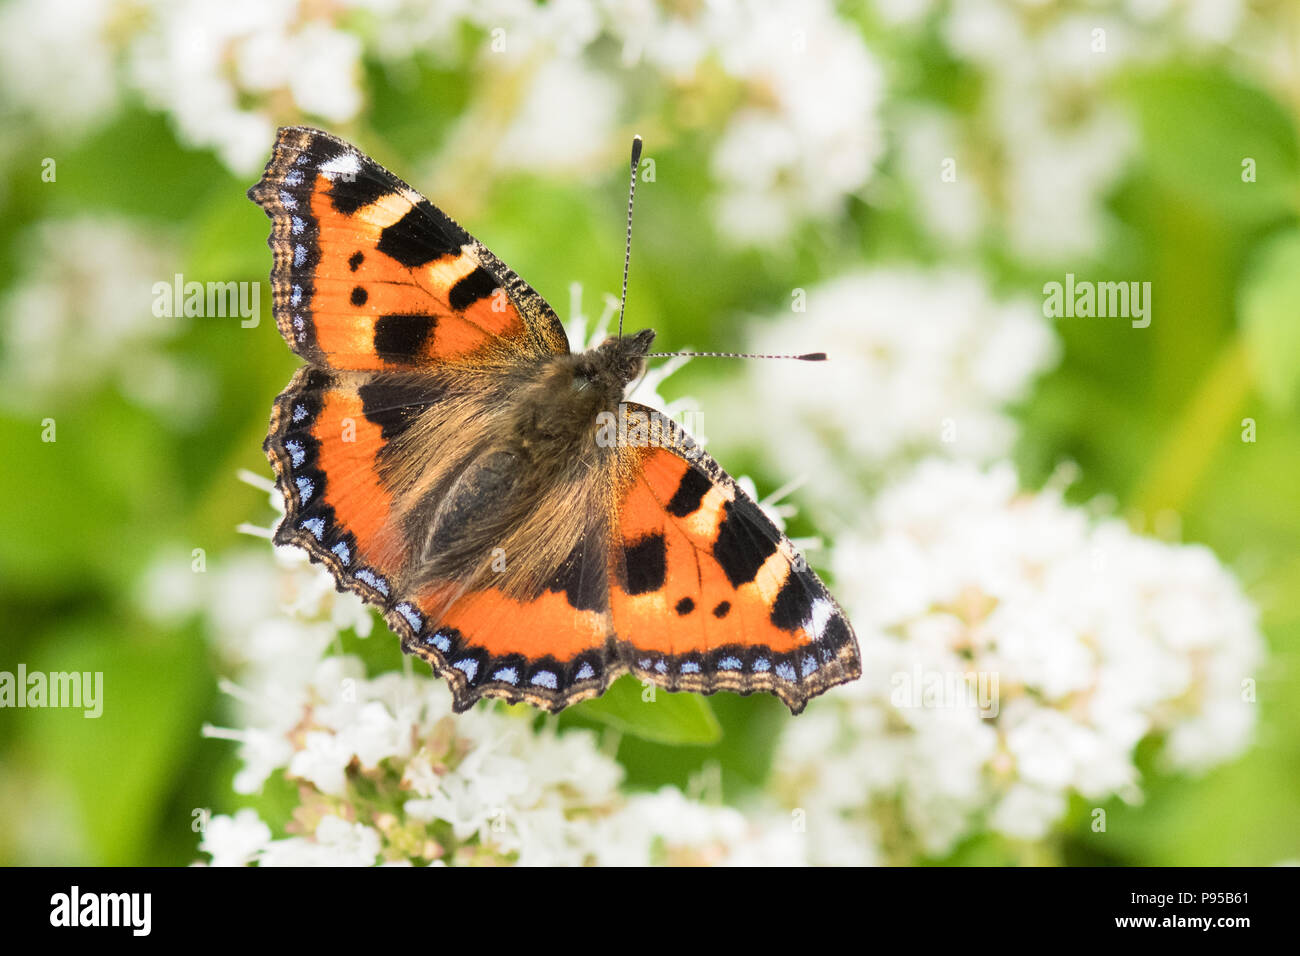 small tortoiseshell butterfly (Aglais urticae) feeding on white marjoram plant flowers in uk garden - Stock Image